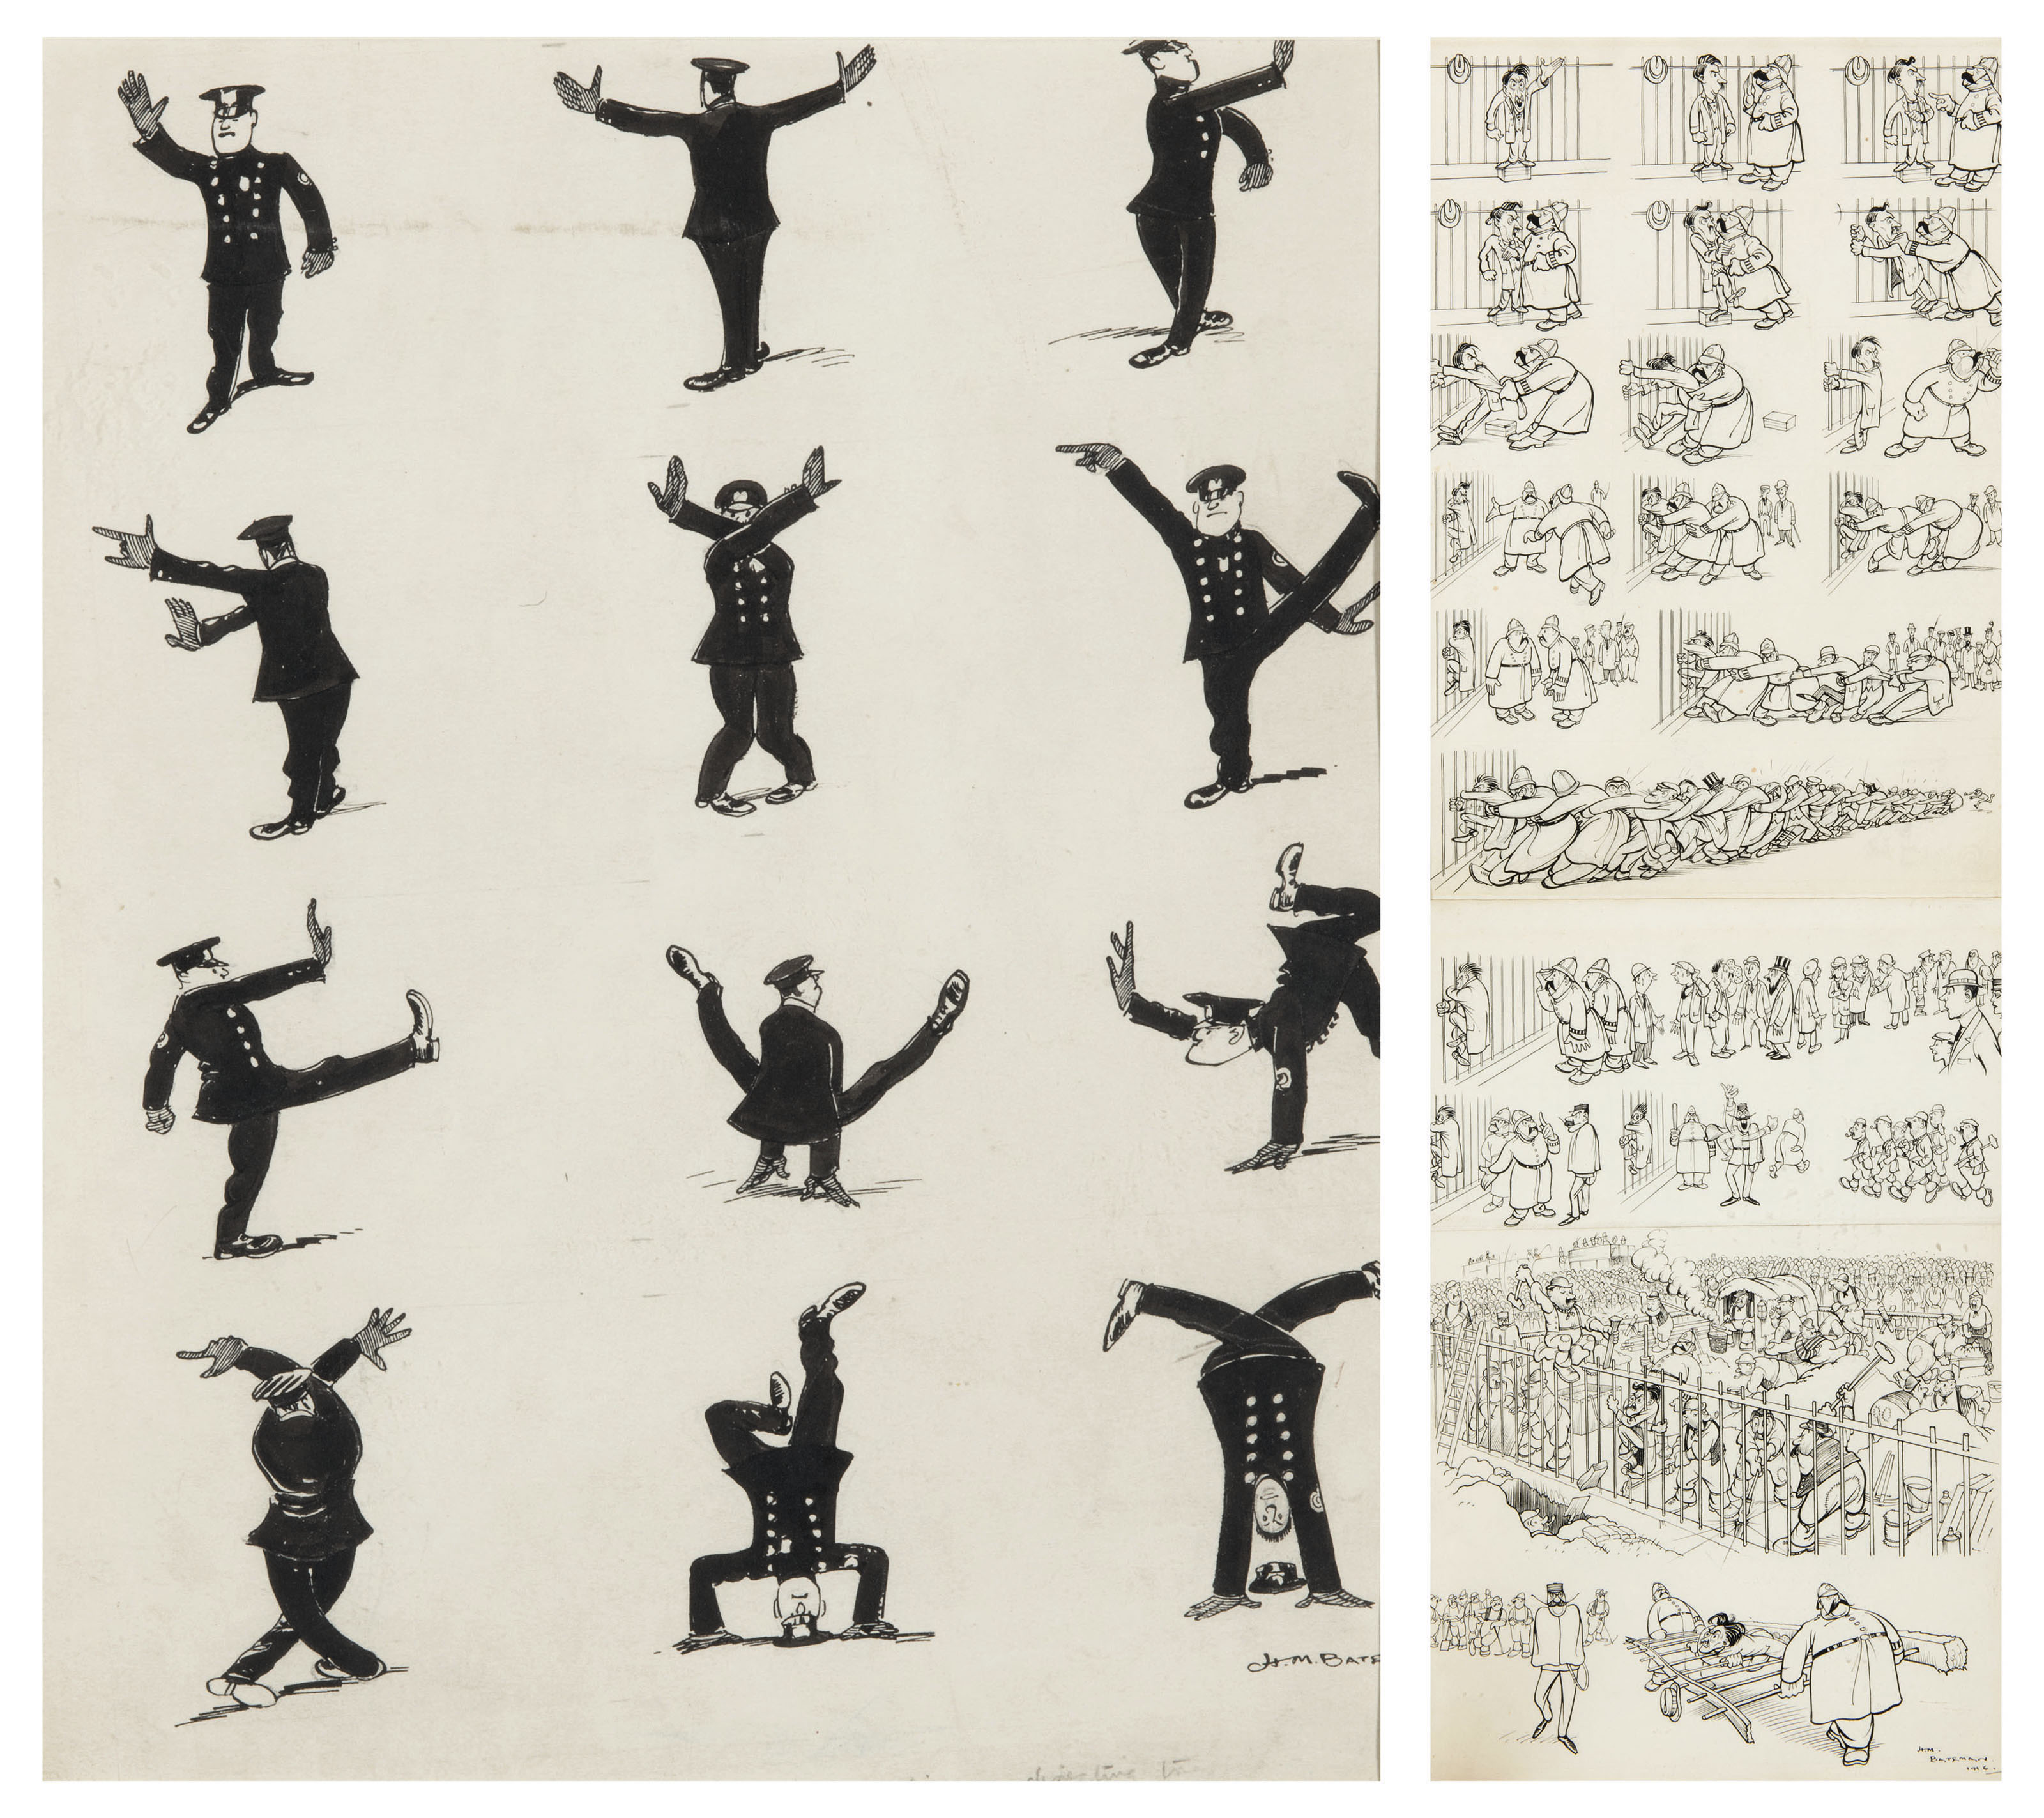 Impressions of a New York policeman directing traffic (i); and The Prisoner, when arrested, clung to the railings (ii)